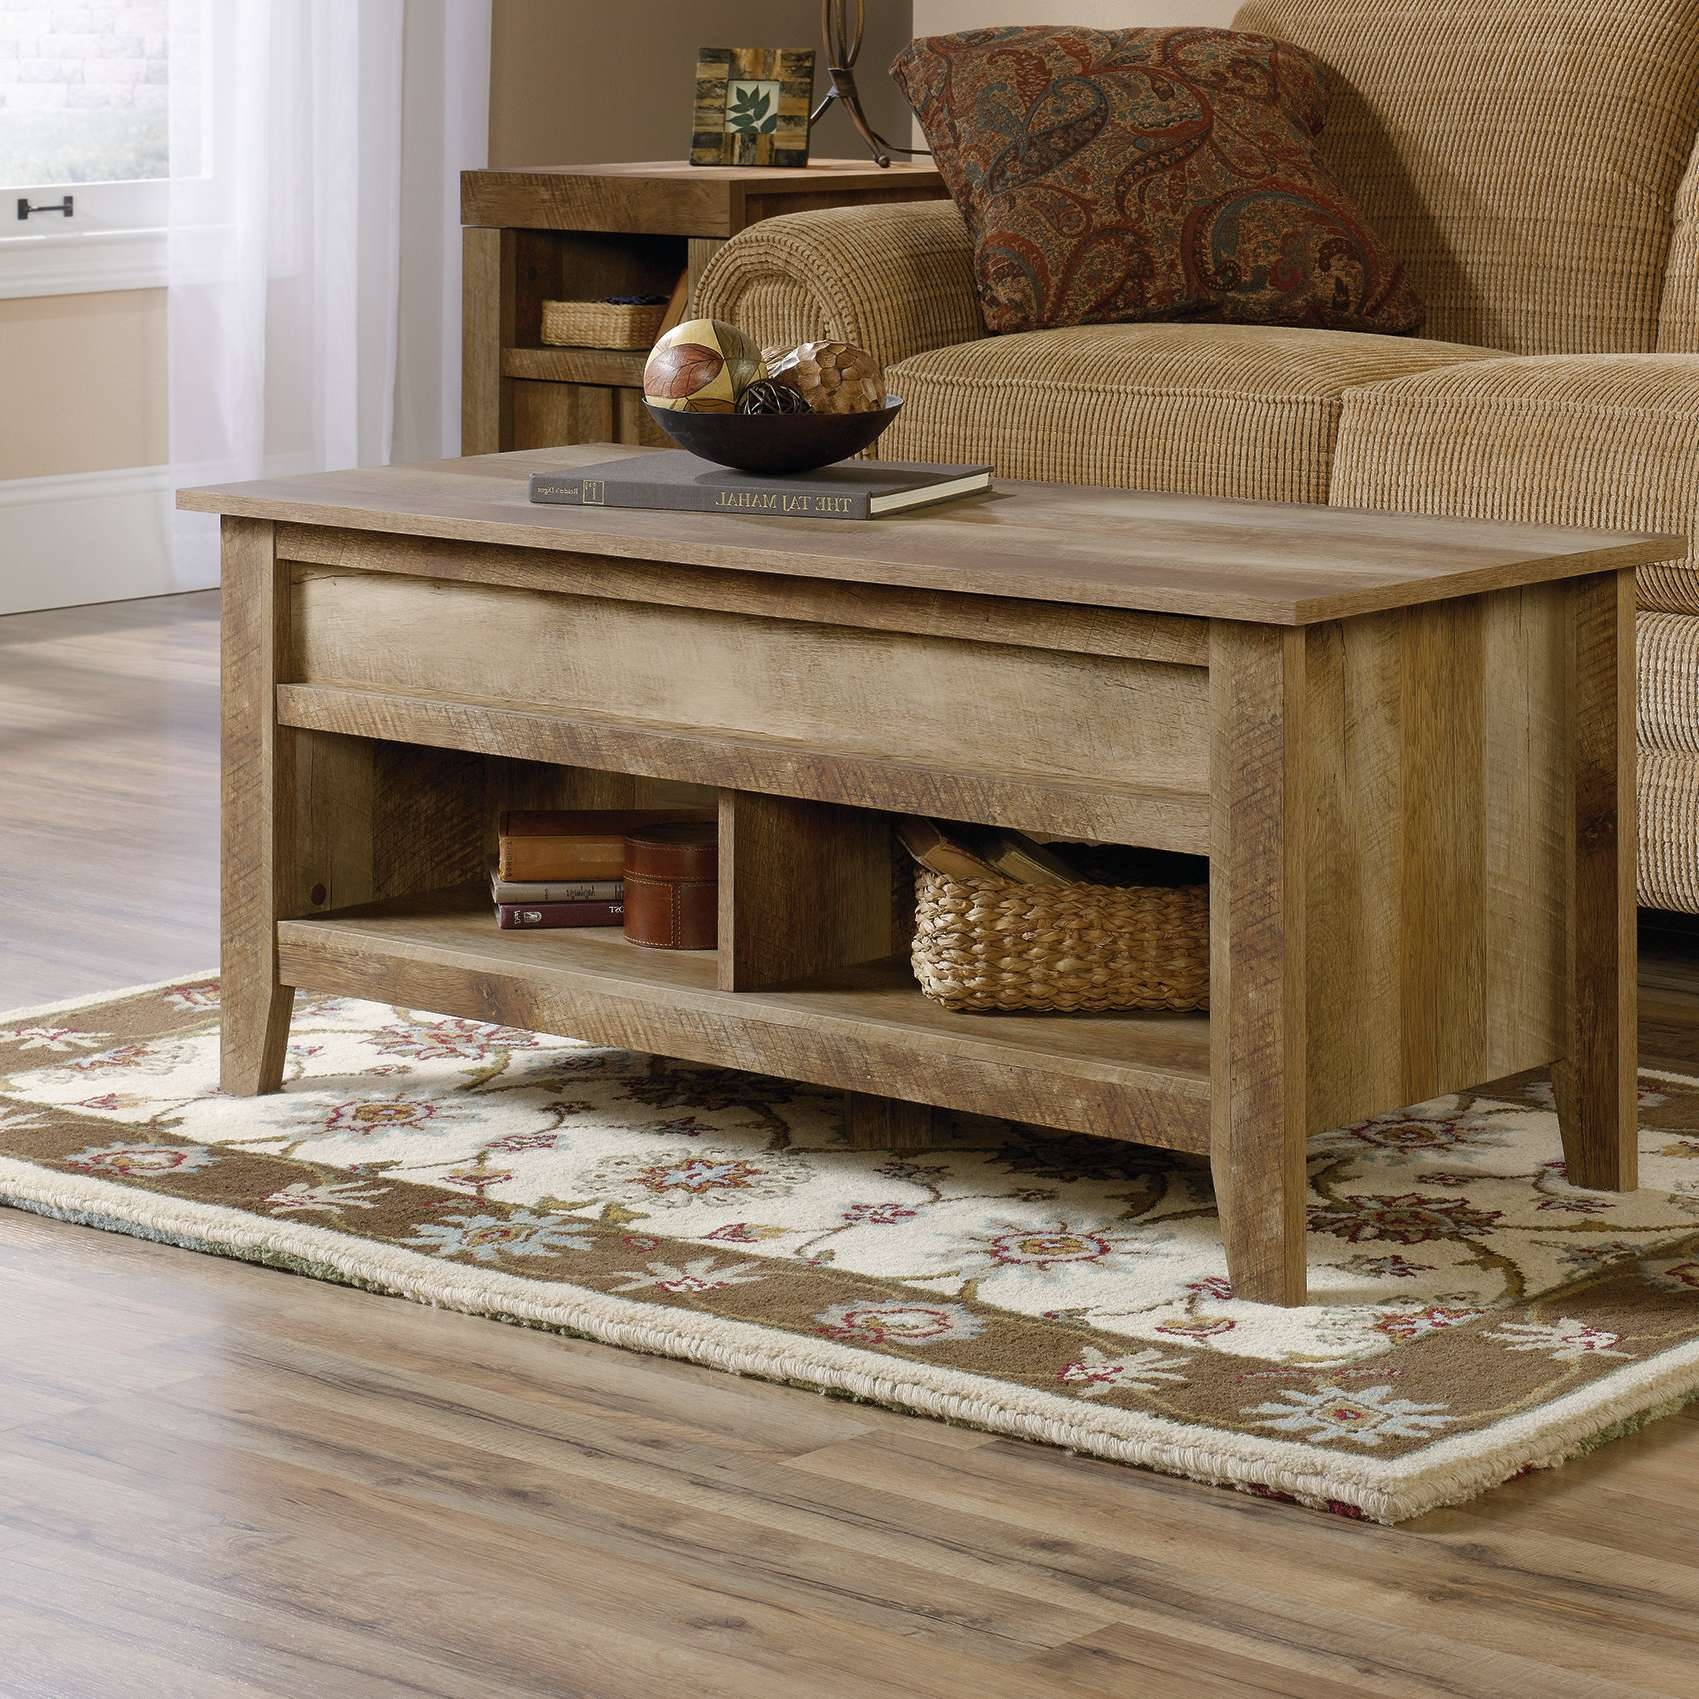 Well Liked Rustic Style Coffee Tables Pertaining To Rustic Coffee Tables You'll Love (View 20 of 20)